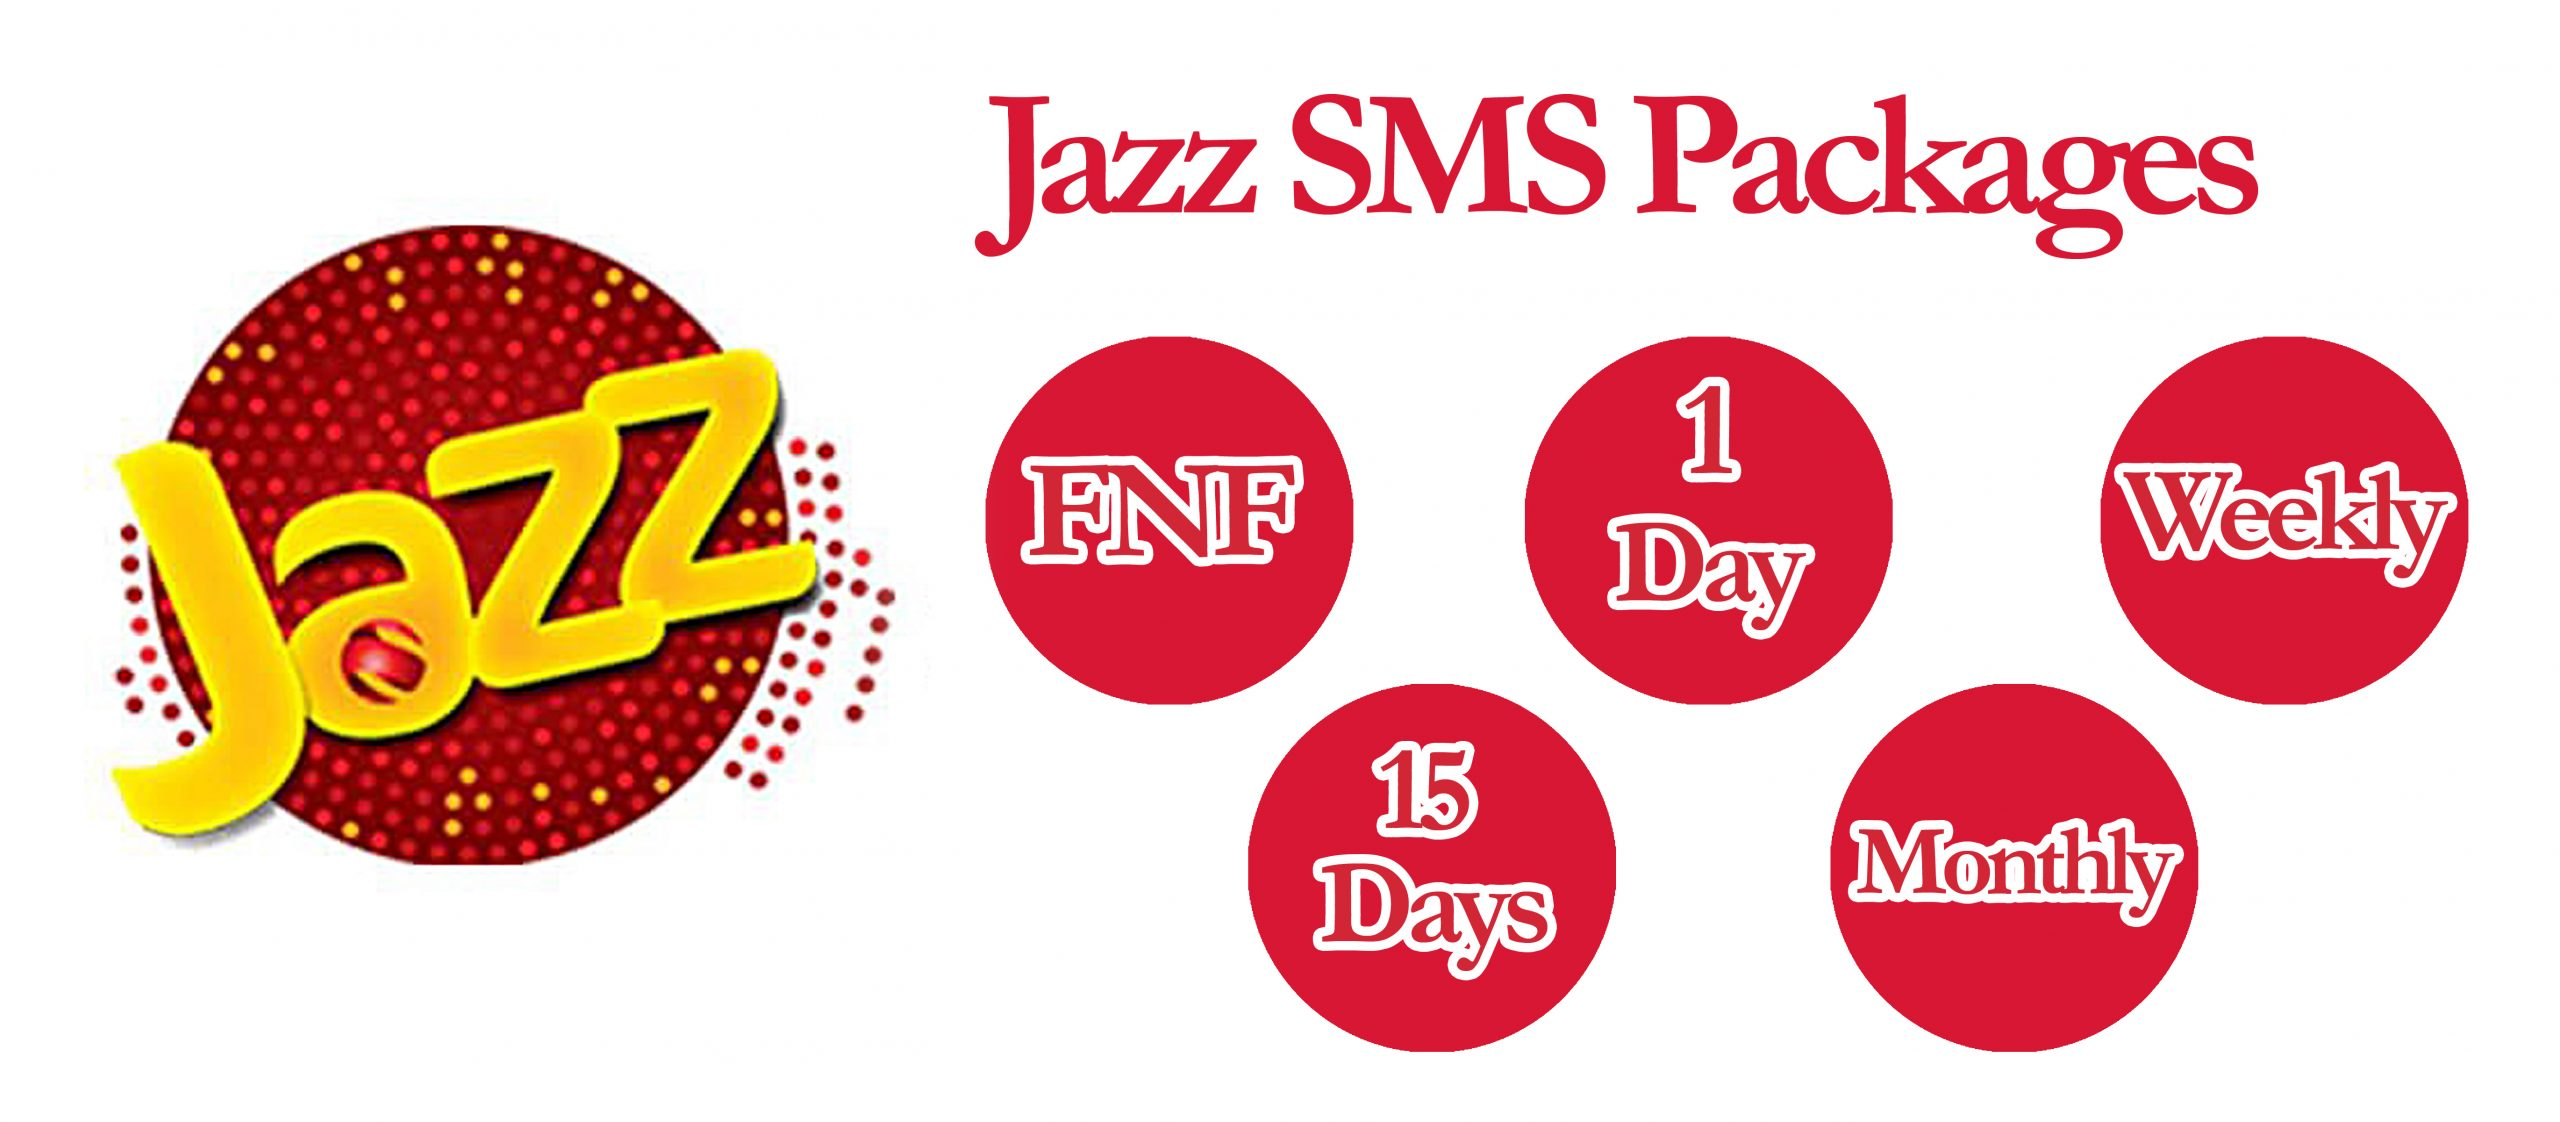 Jazz SMS Packages - Daily, Weekly & Monthly